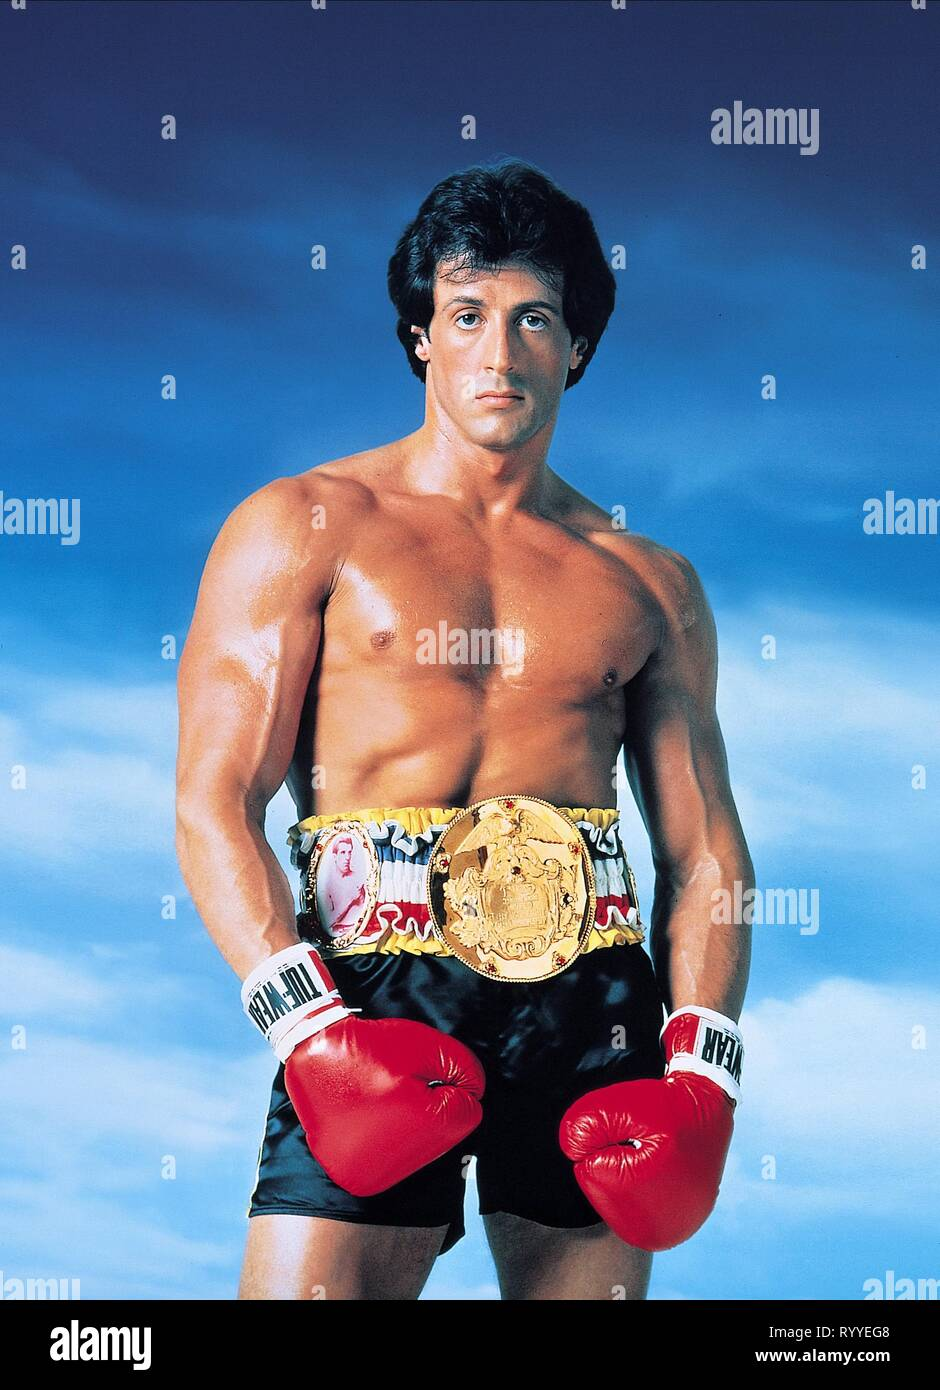 SYLVESTER STALLONE, ROCKY III, 1982 - Stock Image